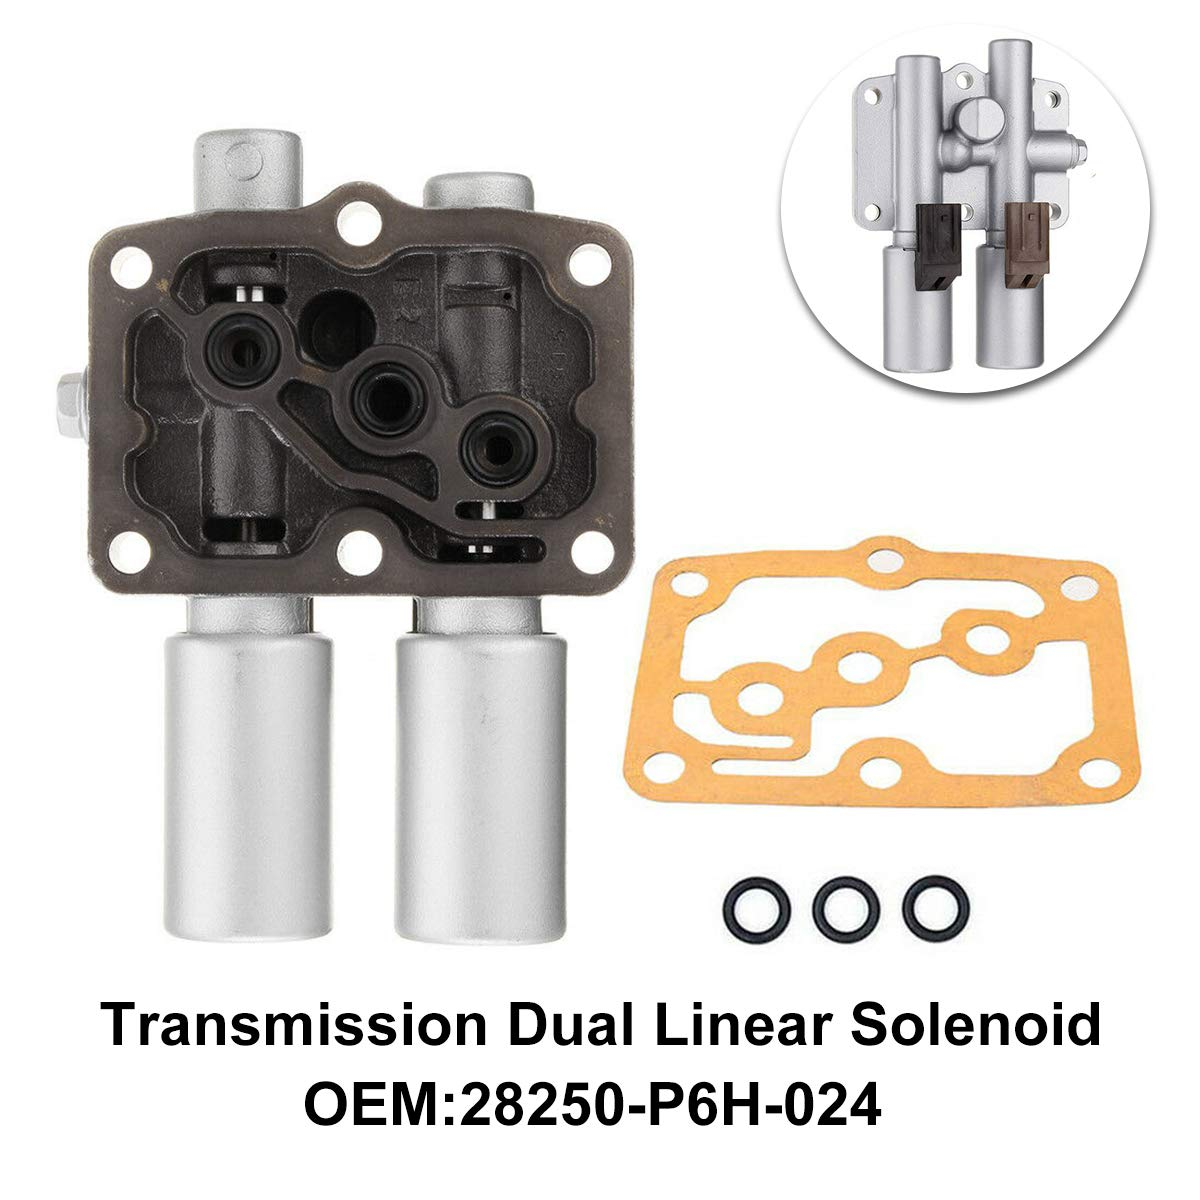 Transmission Dual Linear Solenoid 28250-P6H-024 Replacement for Honda Accord Odyssey Acura CL TL MDX Pilot Prelude 28250P6H024 with 1PCS Gasket and 3PCS O-Rings